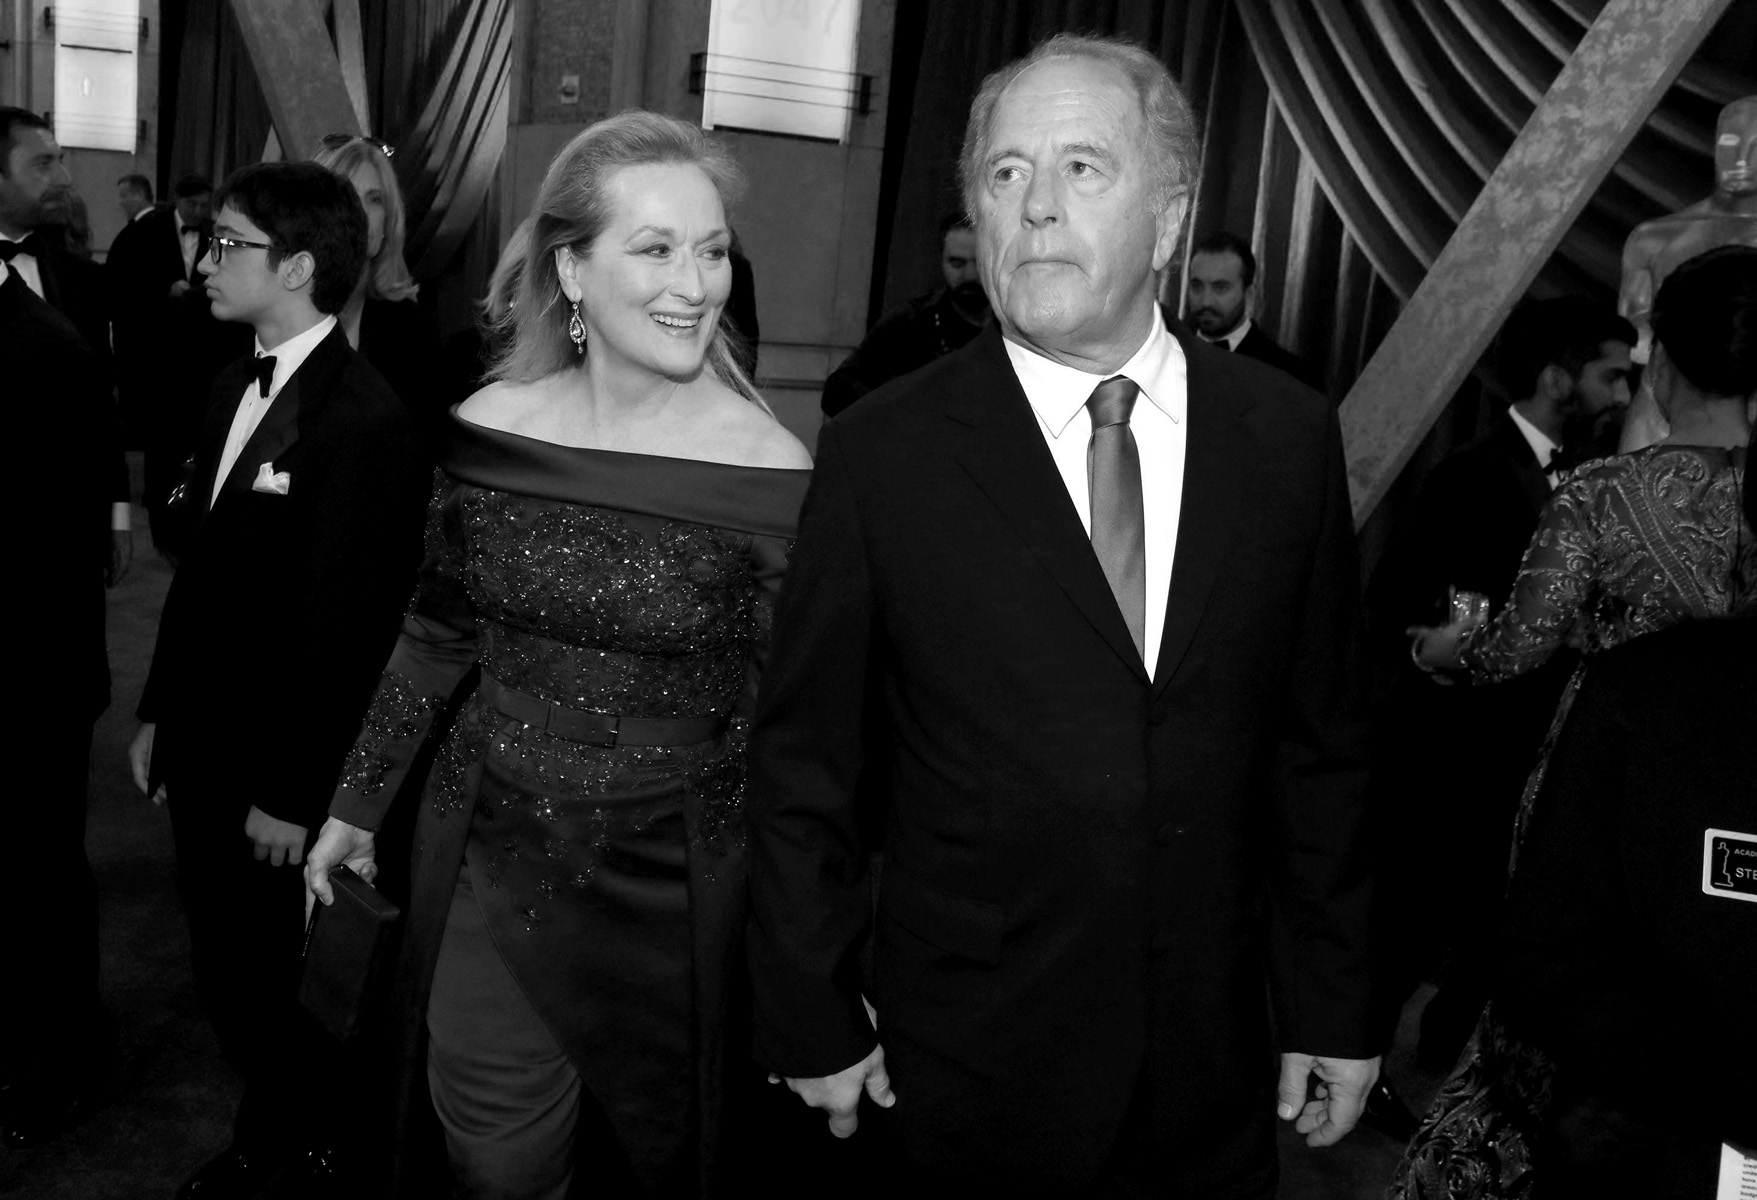 Meryl Streep, left, and Don Gummer arrive at the Oscars on Sunday, Feb. 26, 2017, at the Dolby Theatre in Los Angeles. (Photo by Matt Sayles/Invision/AP)